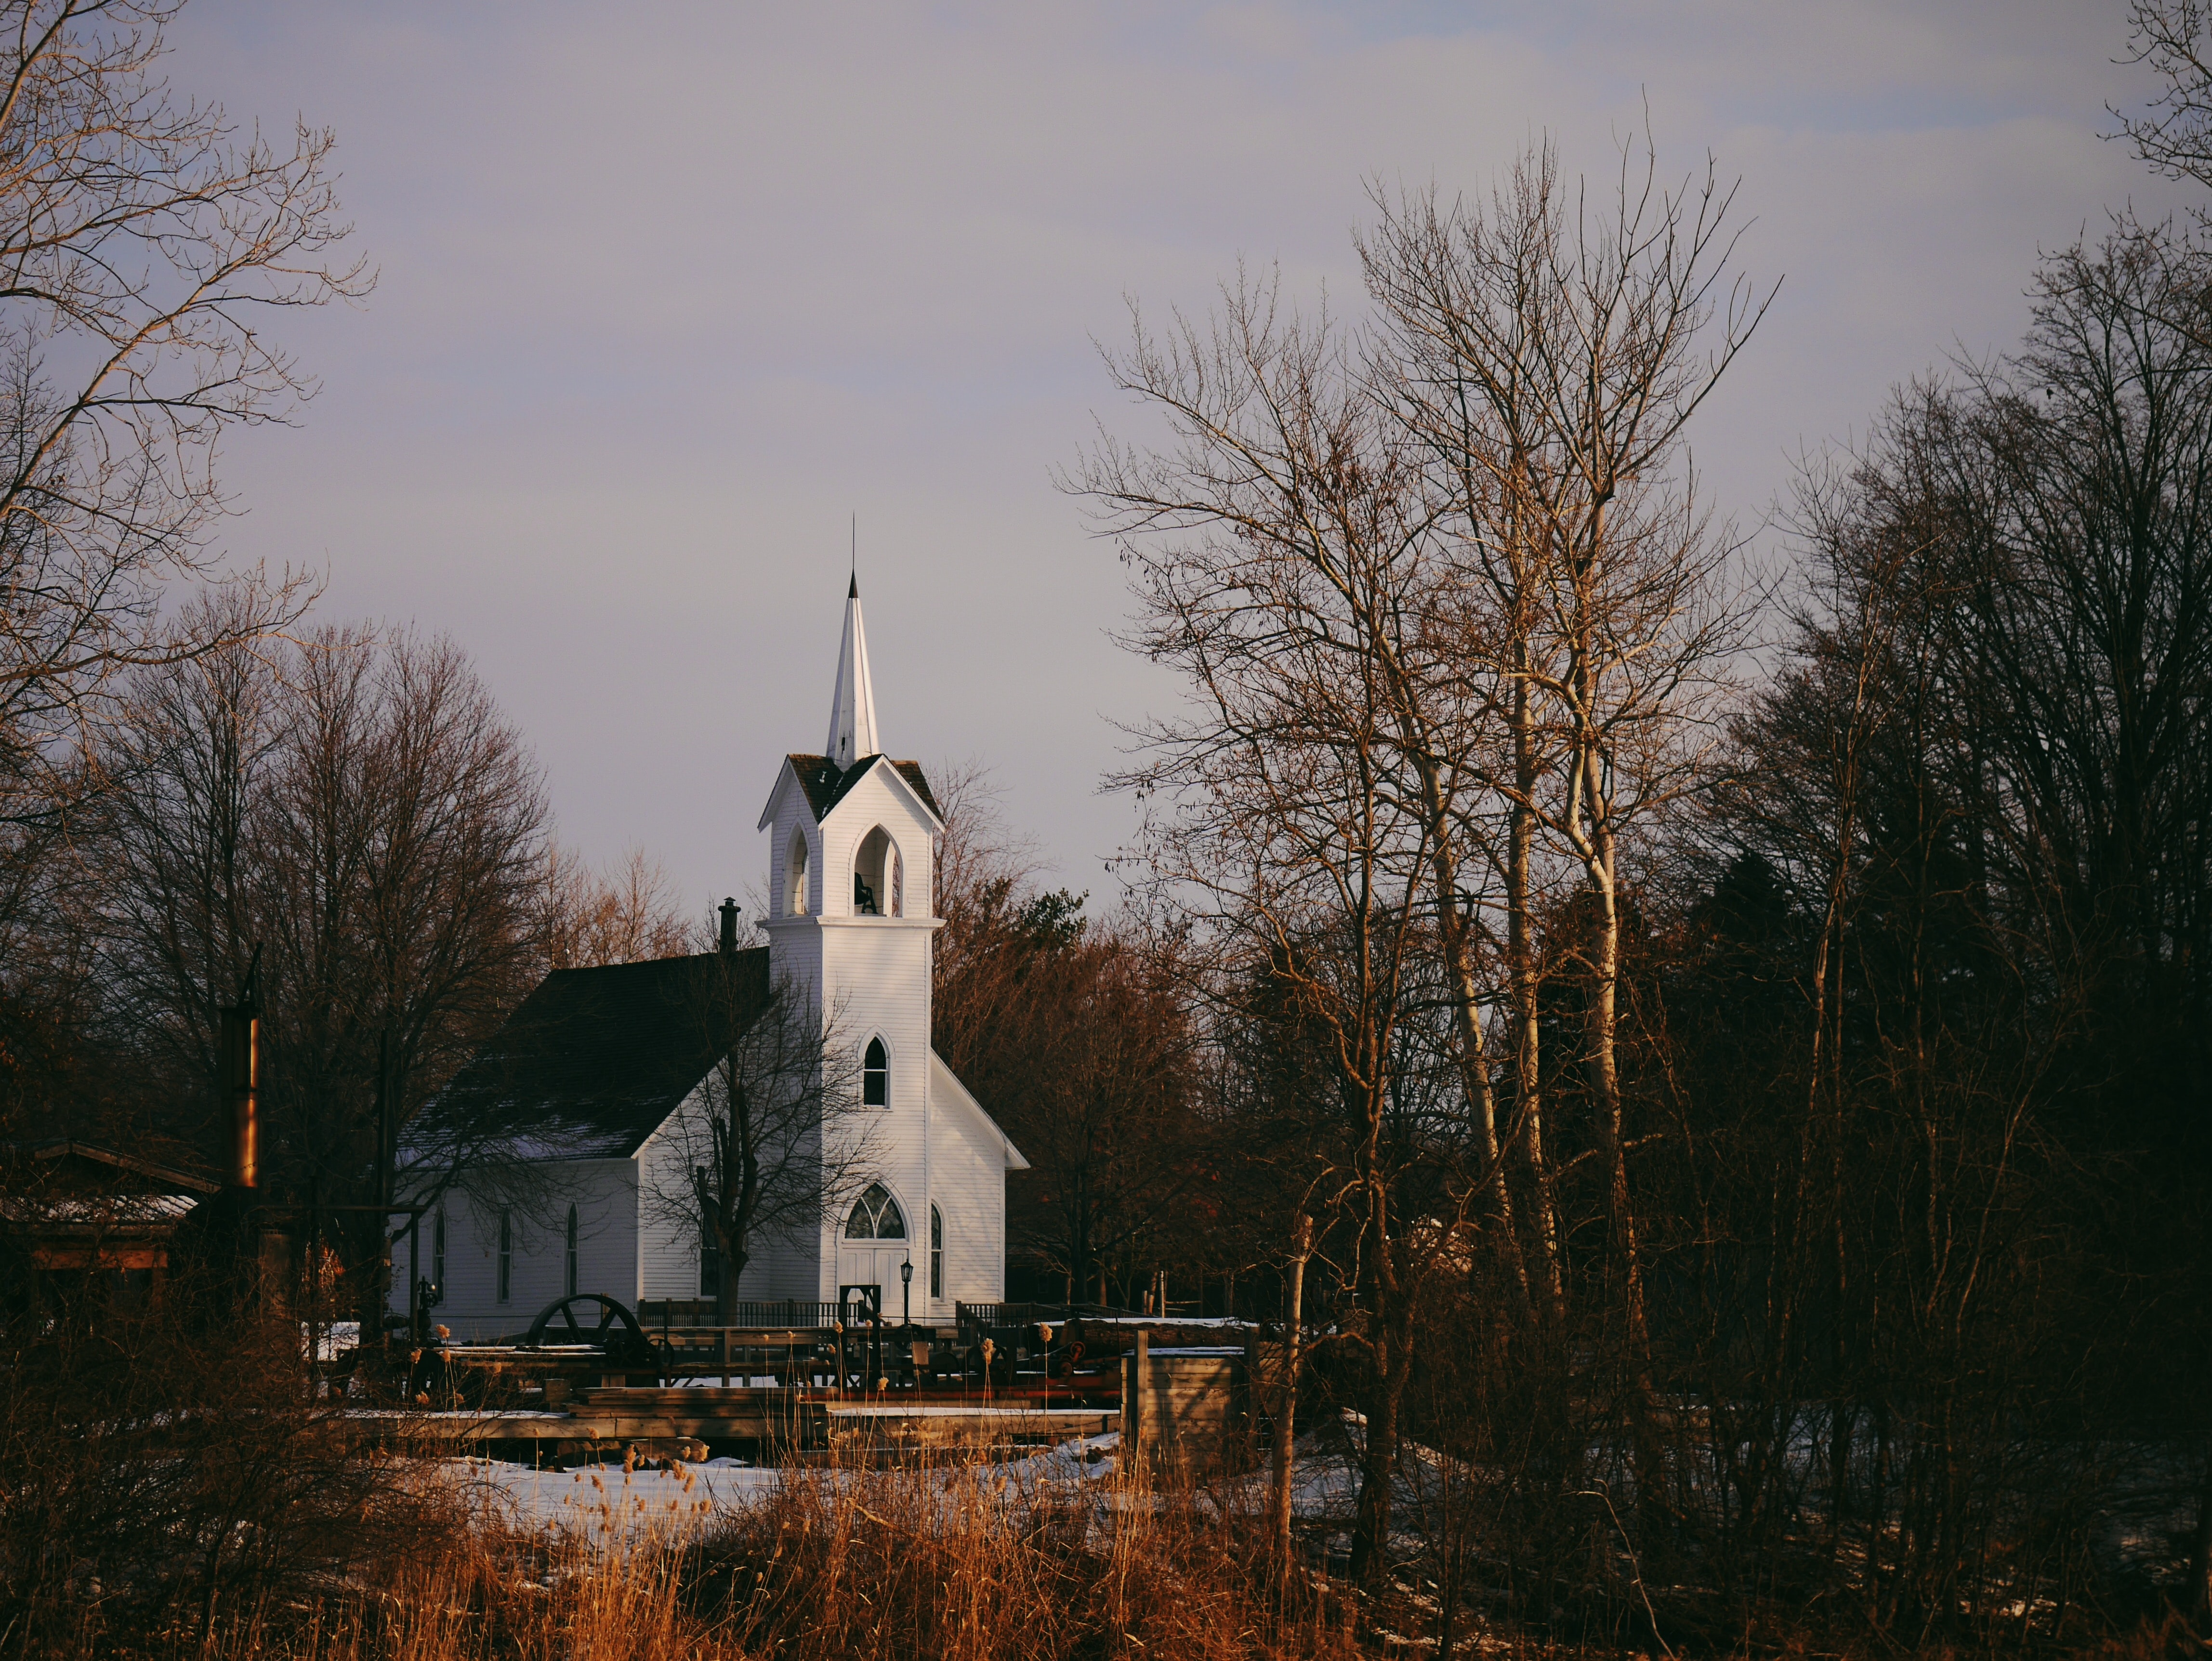 A small white church surrounded by trees